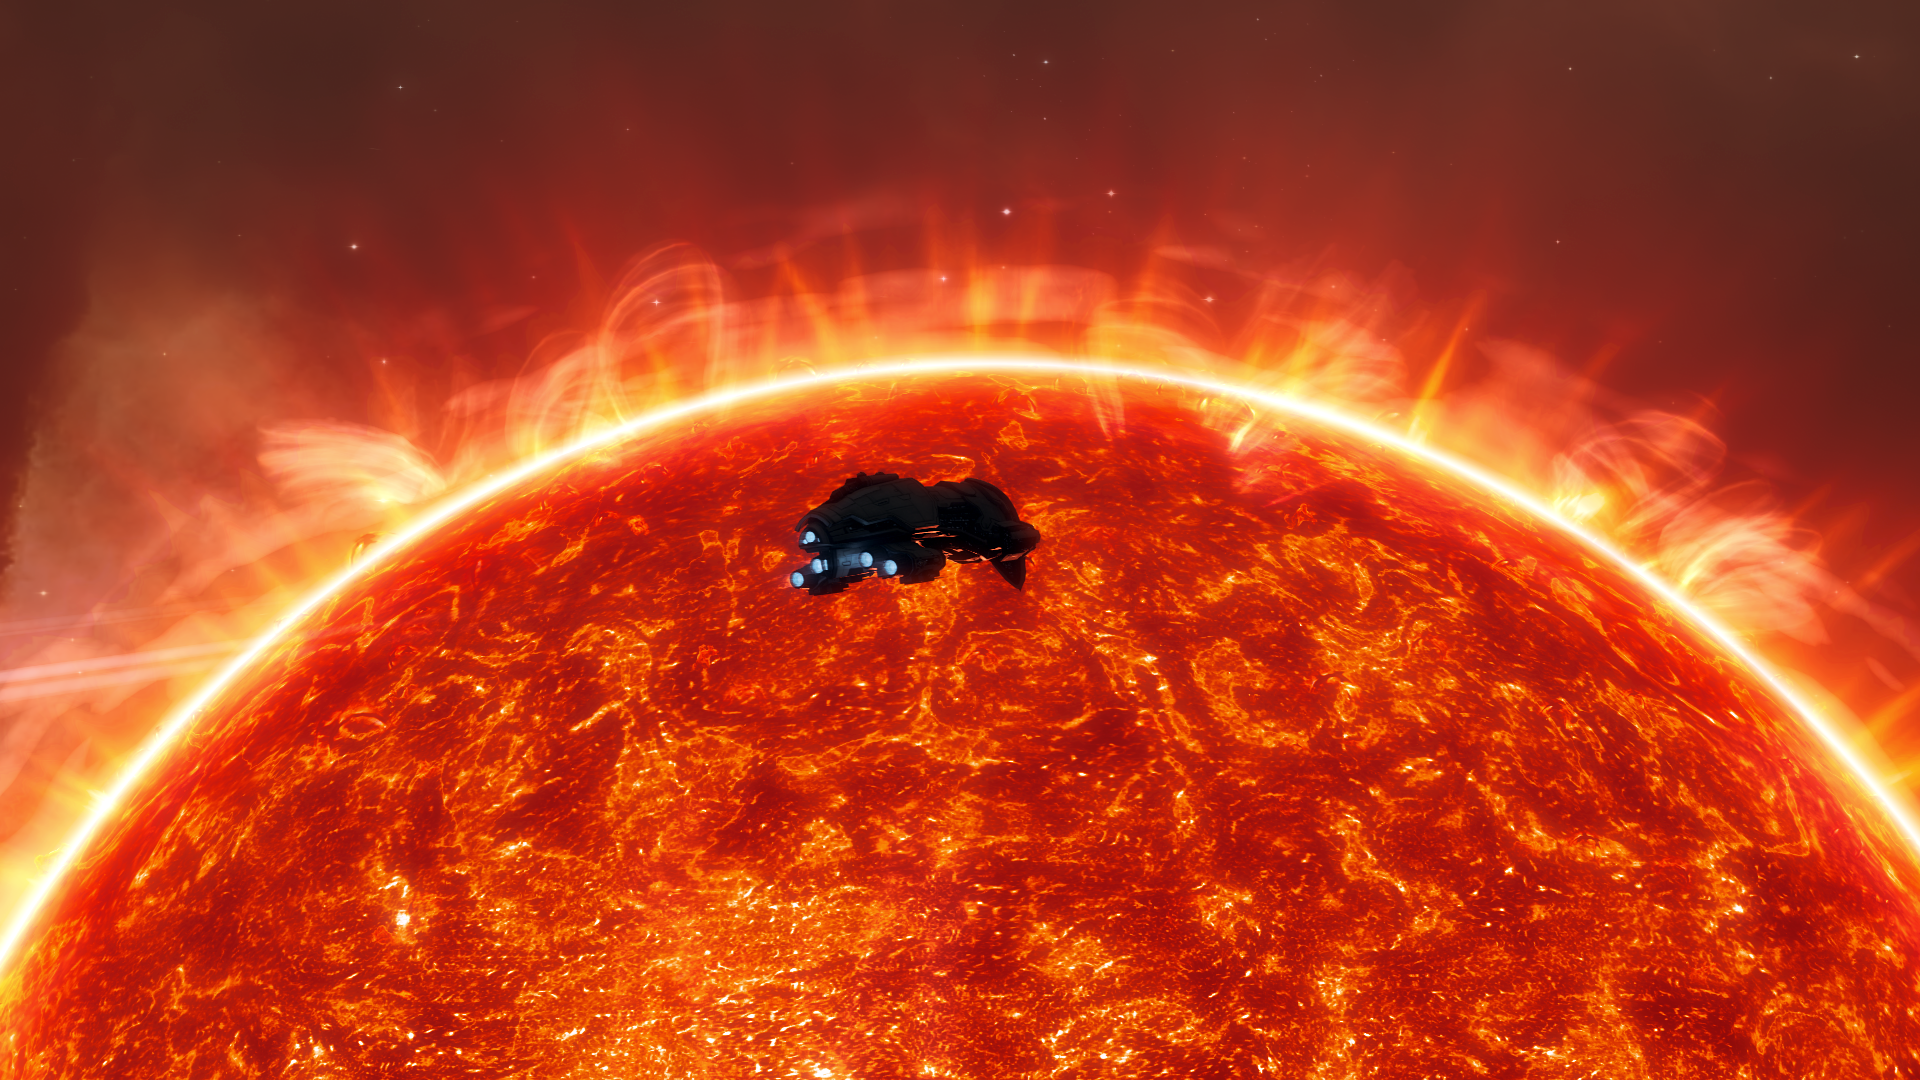 Eve Online - Red Giant by Vollhov